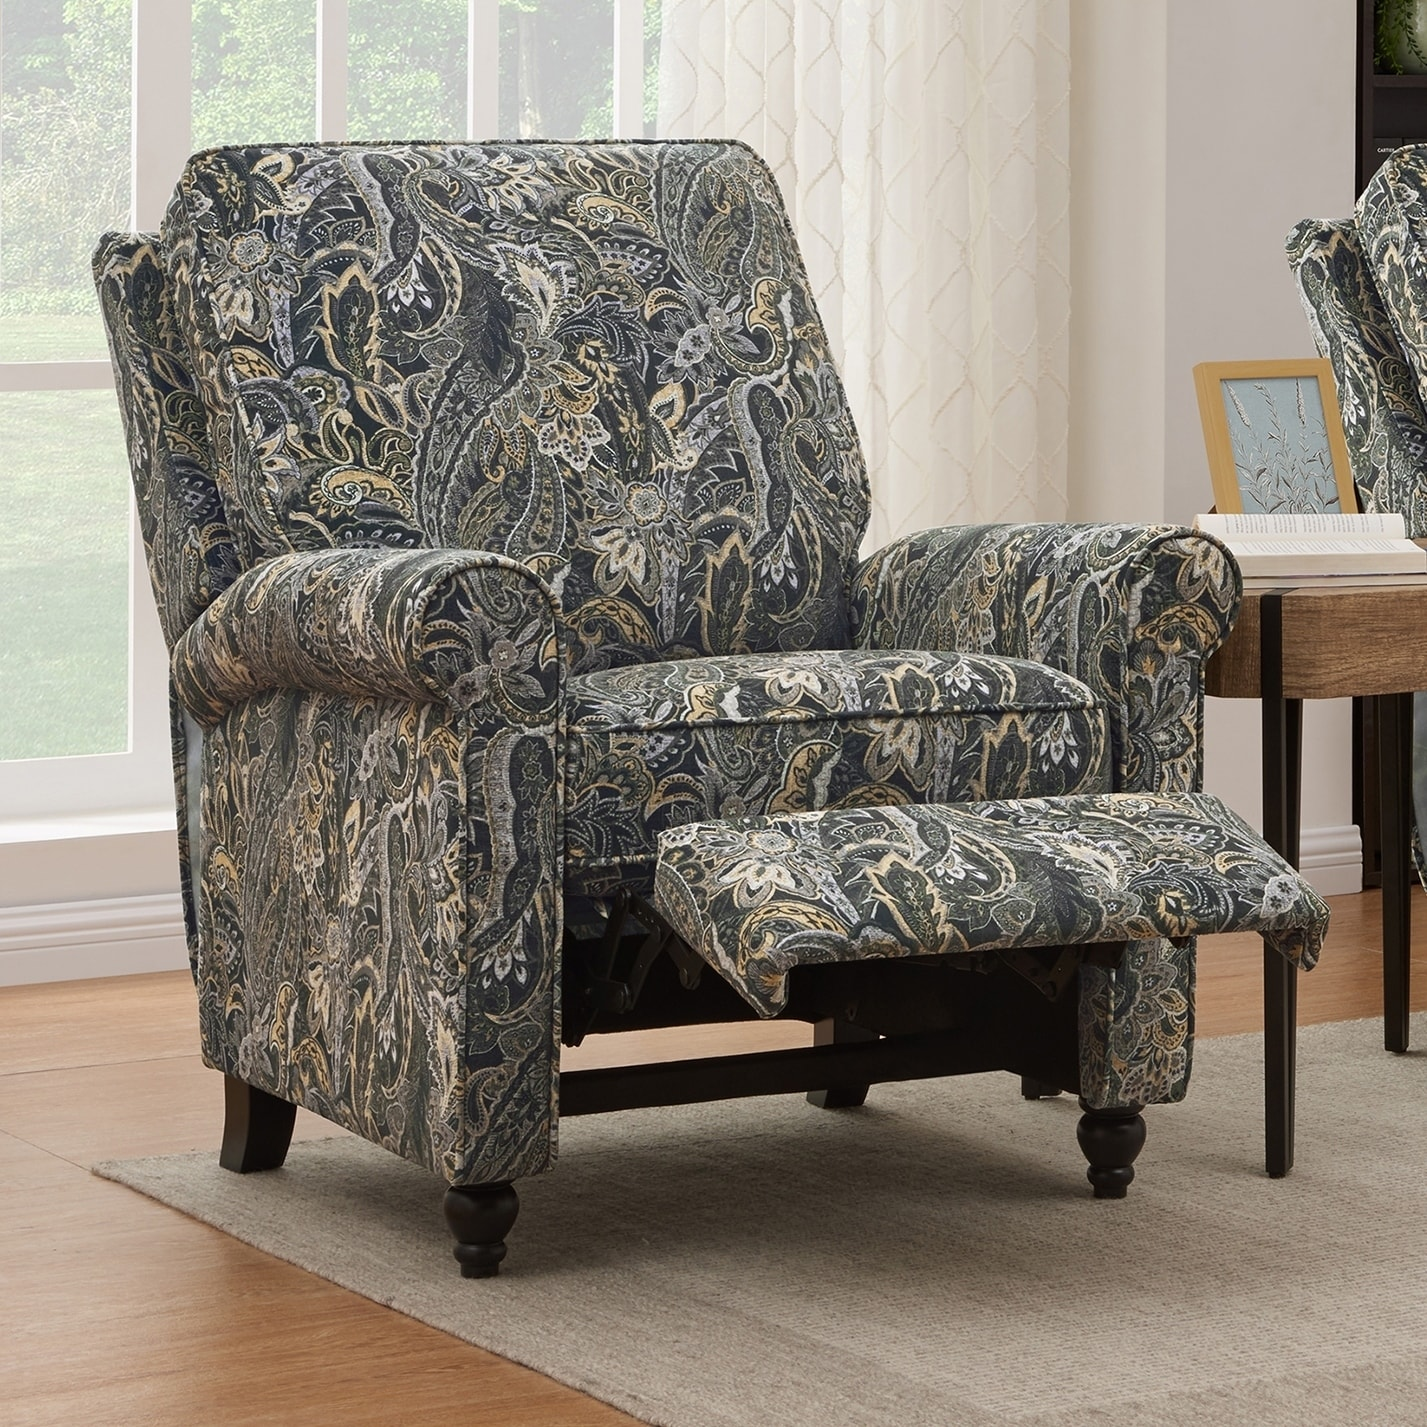 Paisley Chair Details About Prolounger Grey Paisley Velvet Push Back Recliner Chair